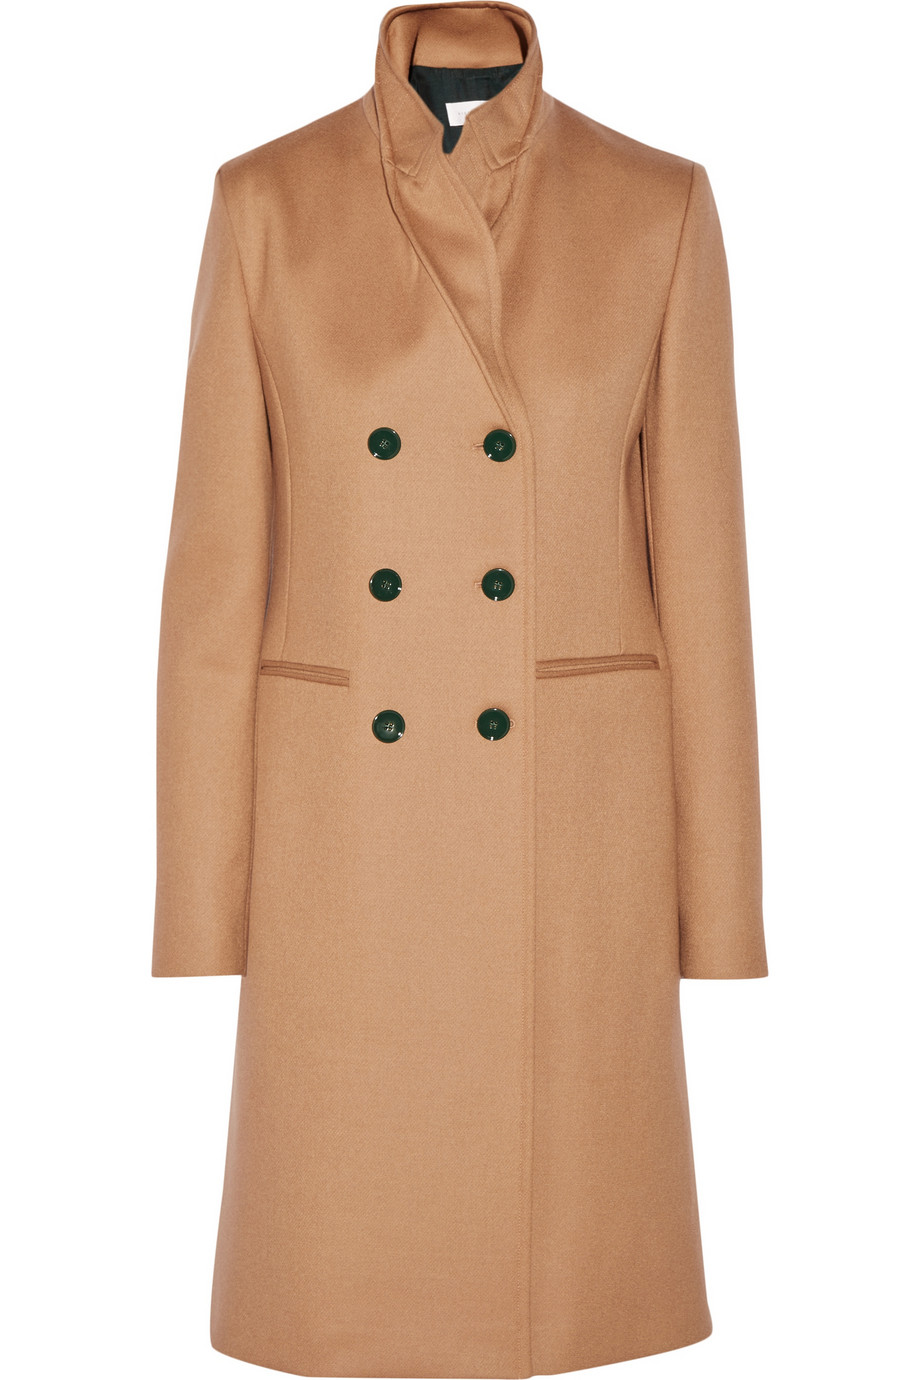 Women's 2015 Fall Coat Trends: Military Trench | MiKADO